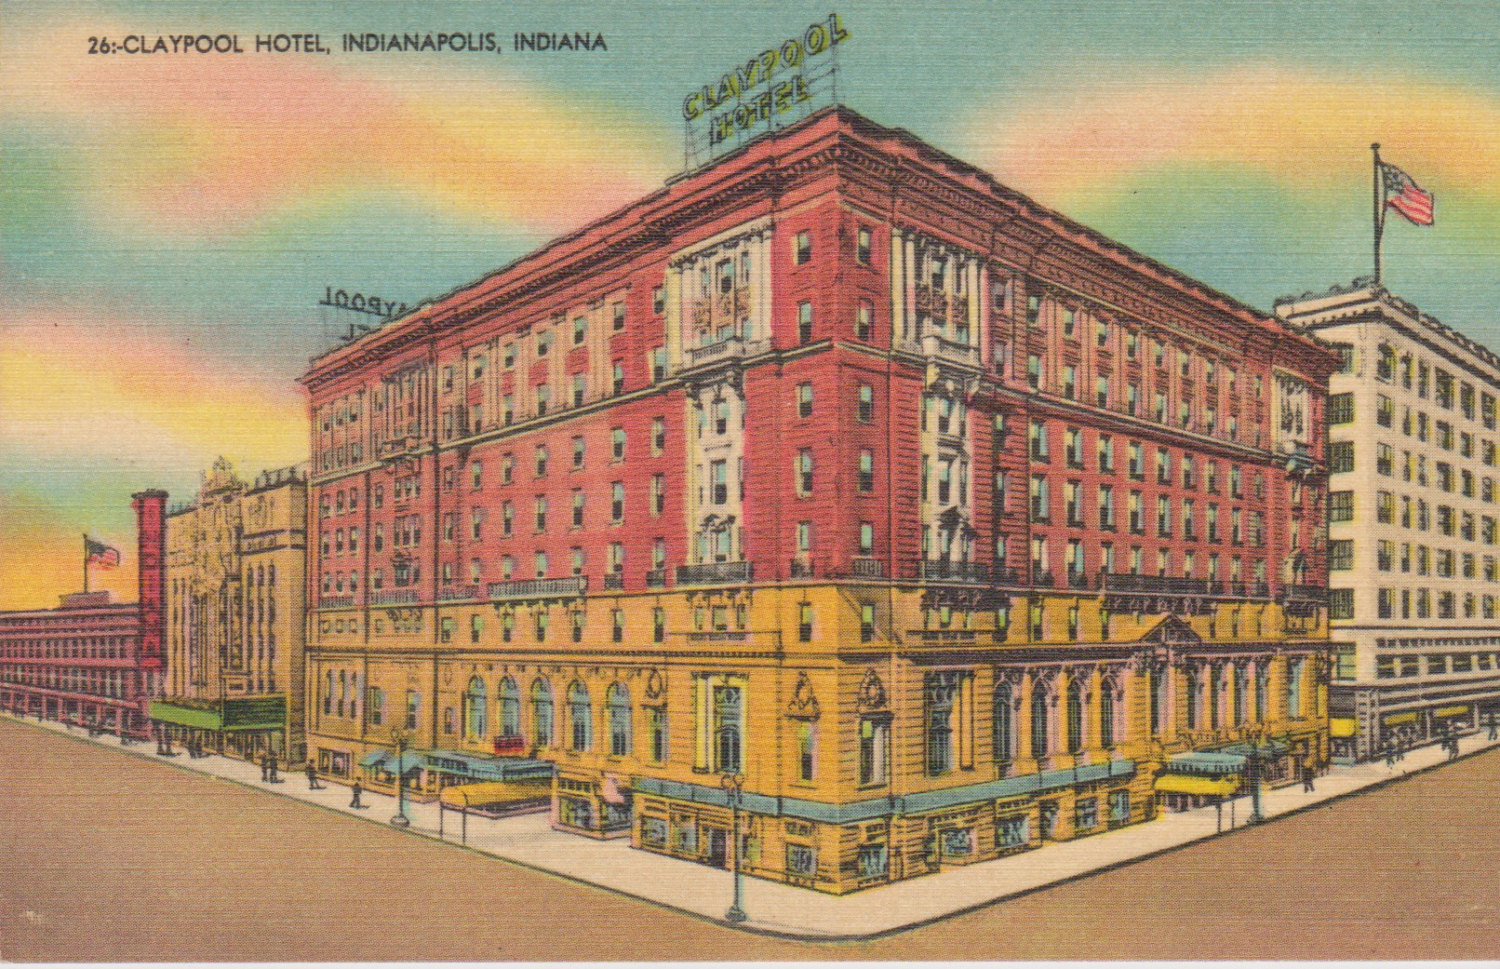 The Claypool Hotel was one of the largest and most luxurious hotels in the United States when it opened in 1903.